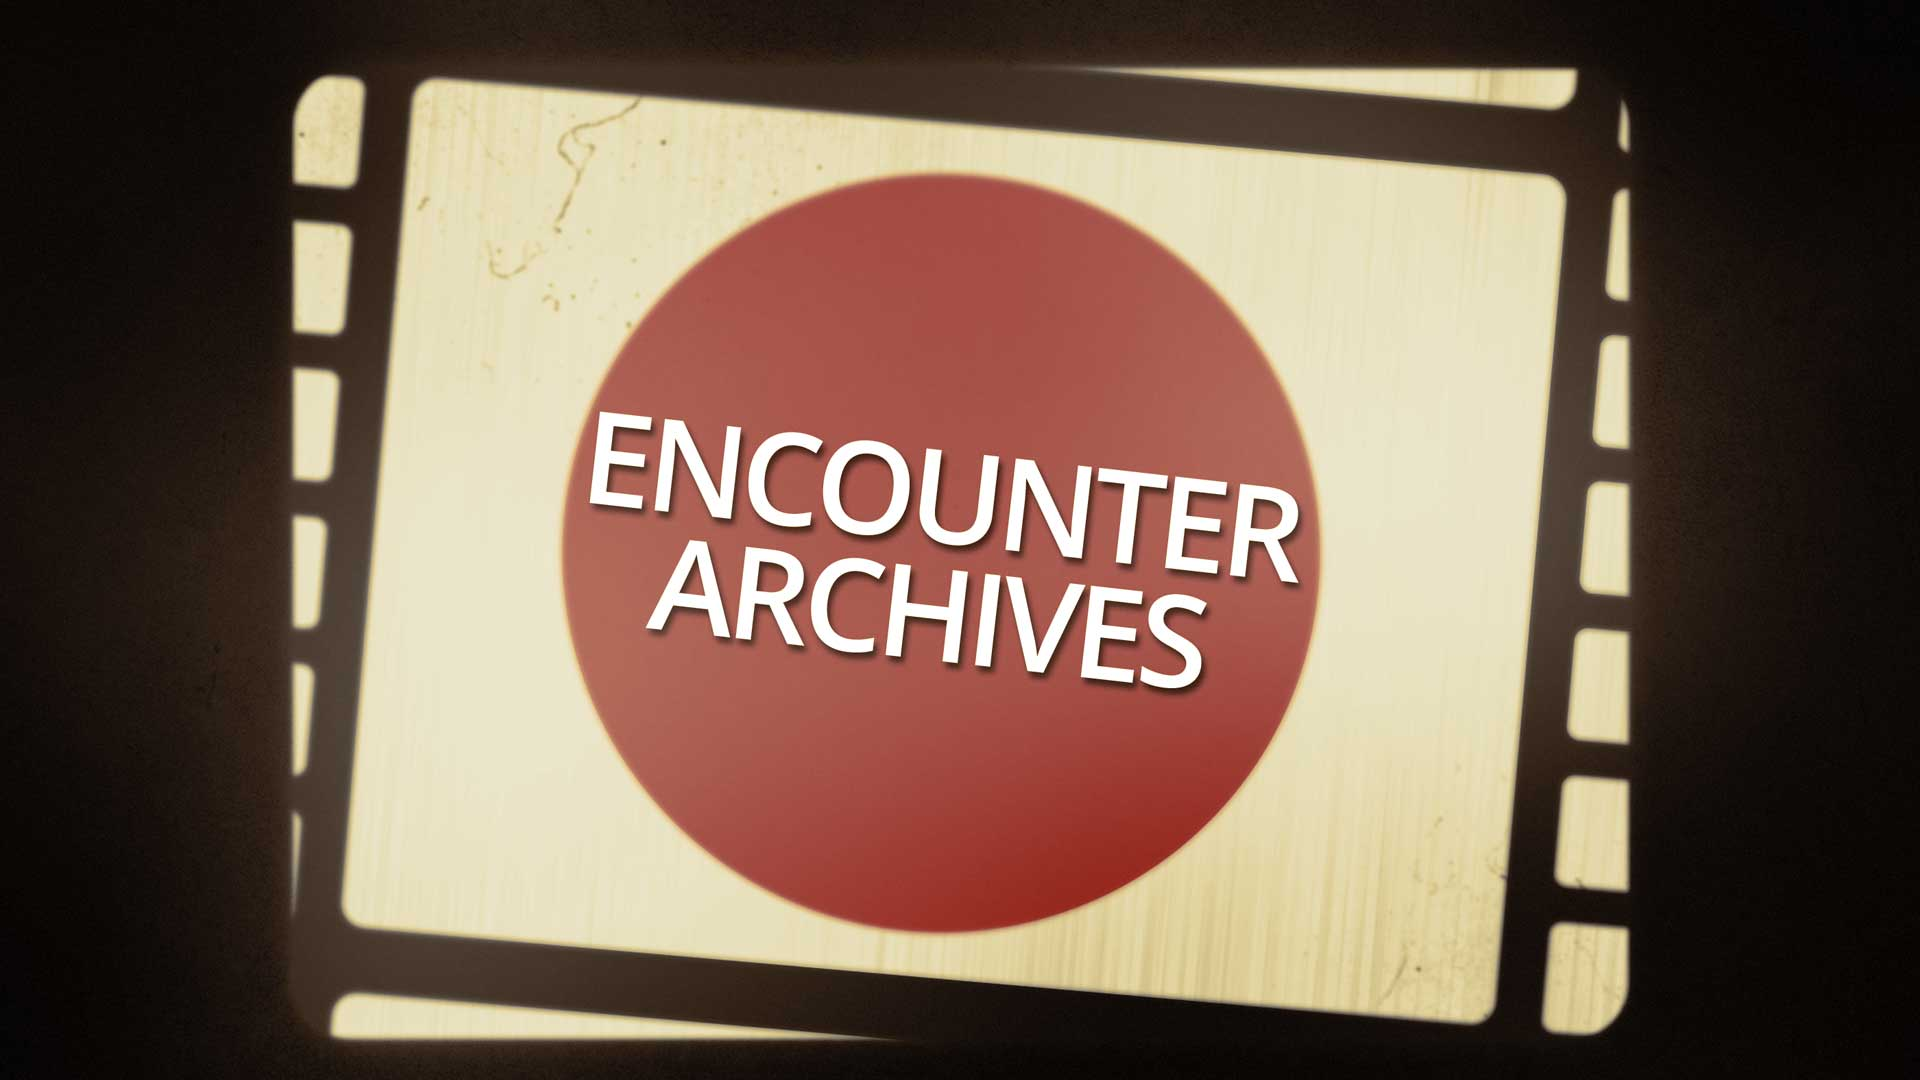 VIEW THE ENCOUNTER ARCHIVES